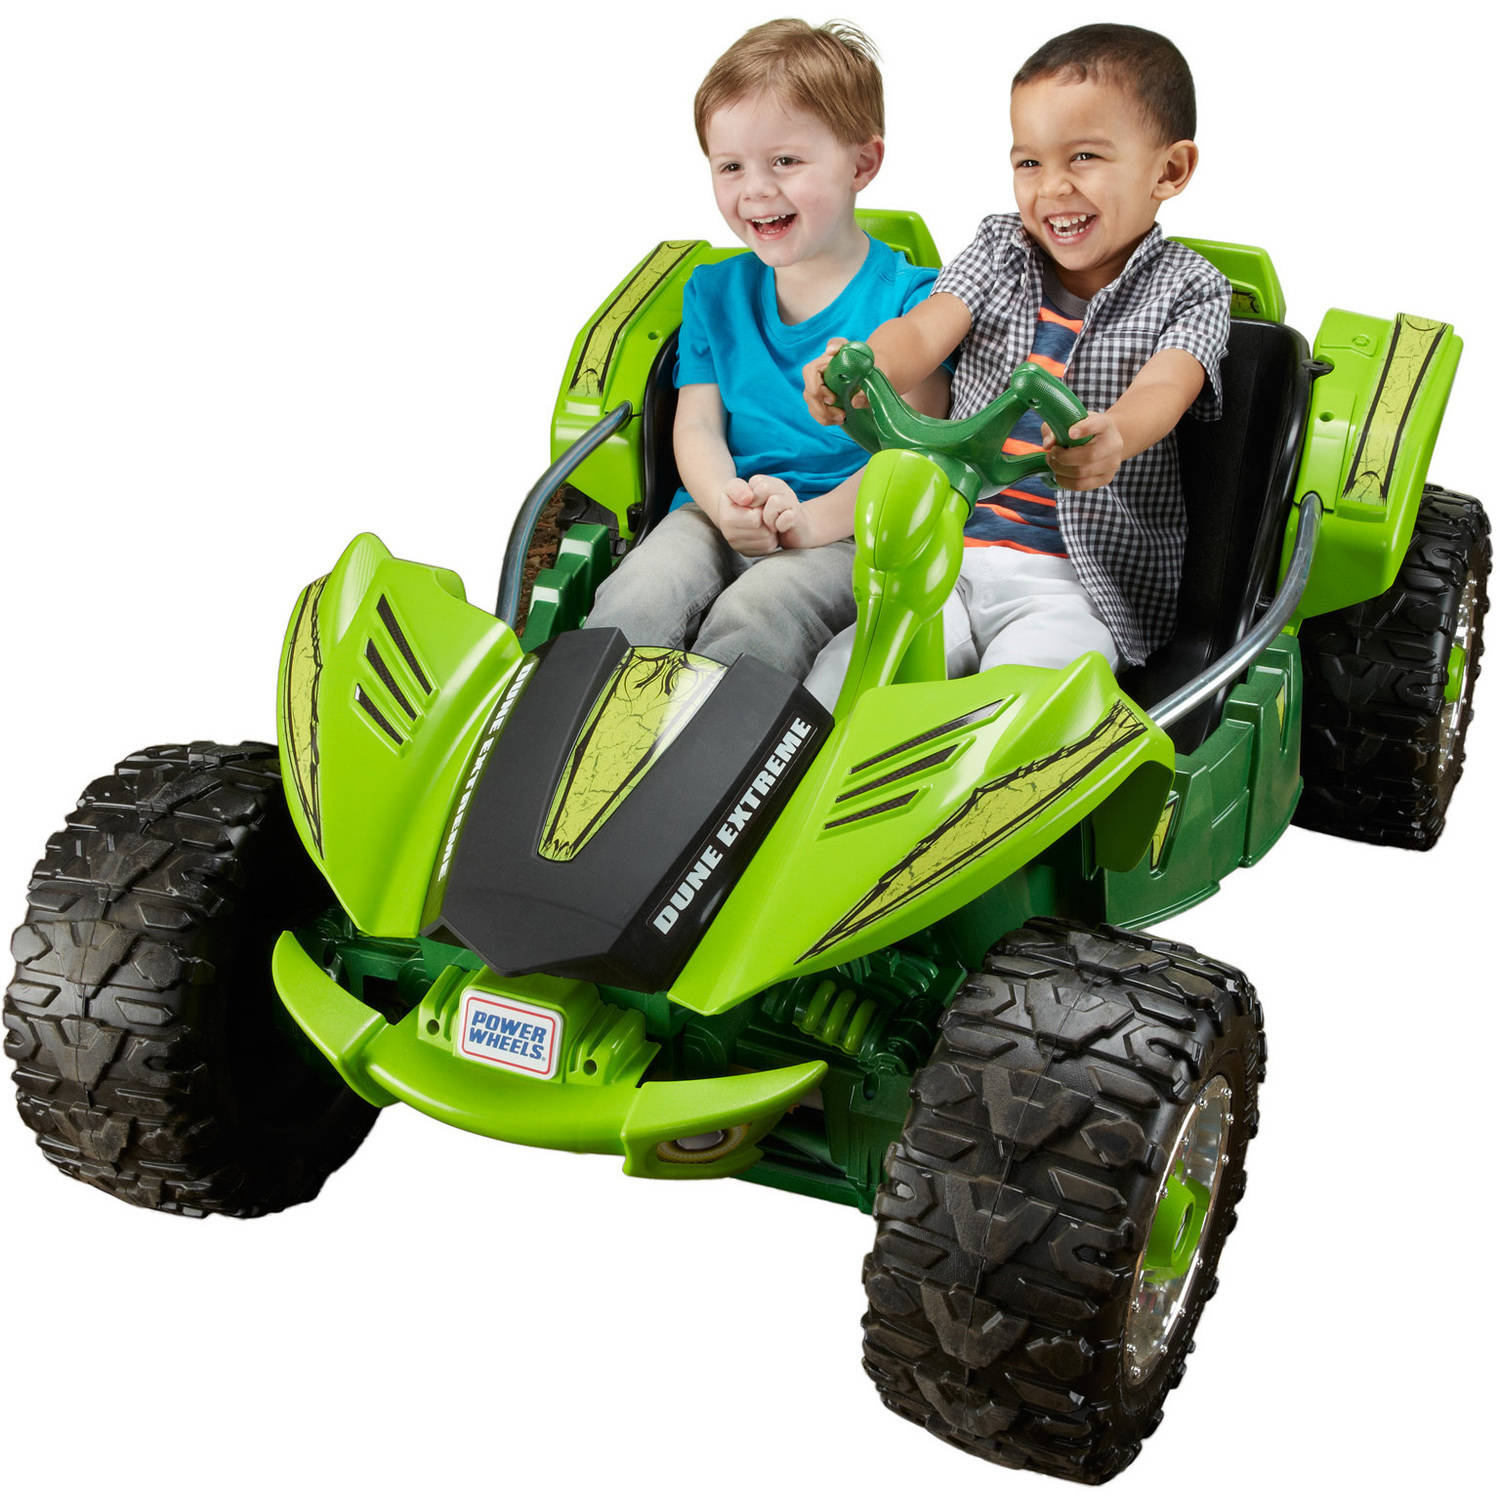 12V MP3 Kids Ride on Truck Car R c Remote Control LED Lights AUX